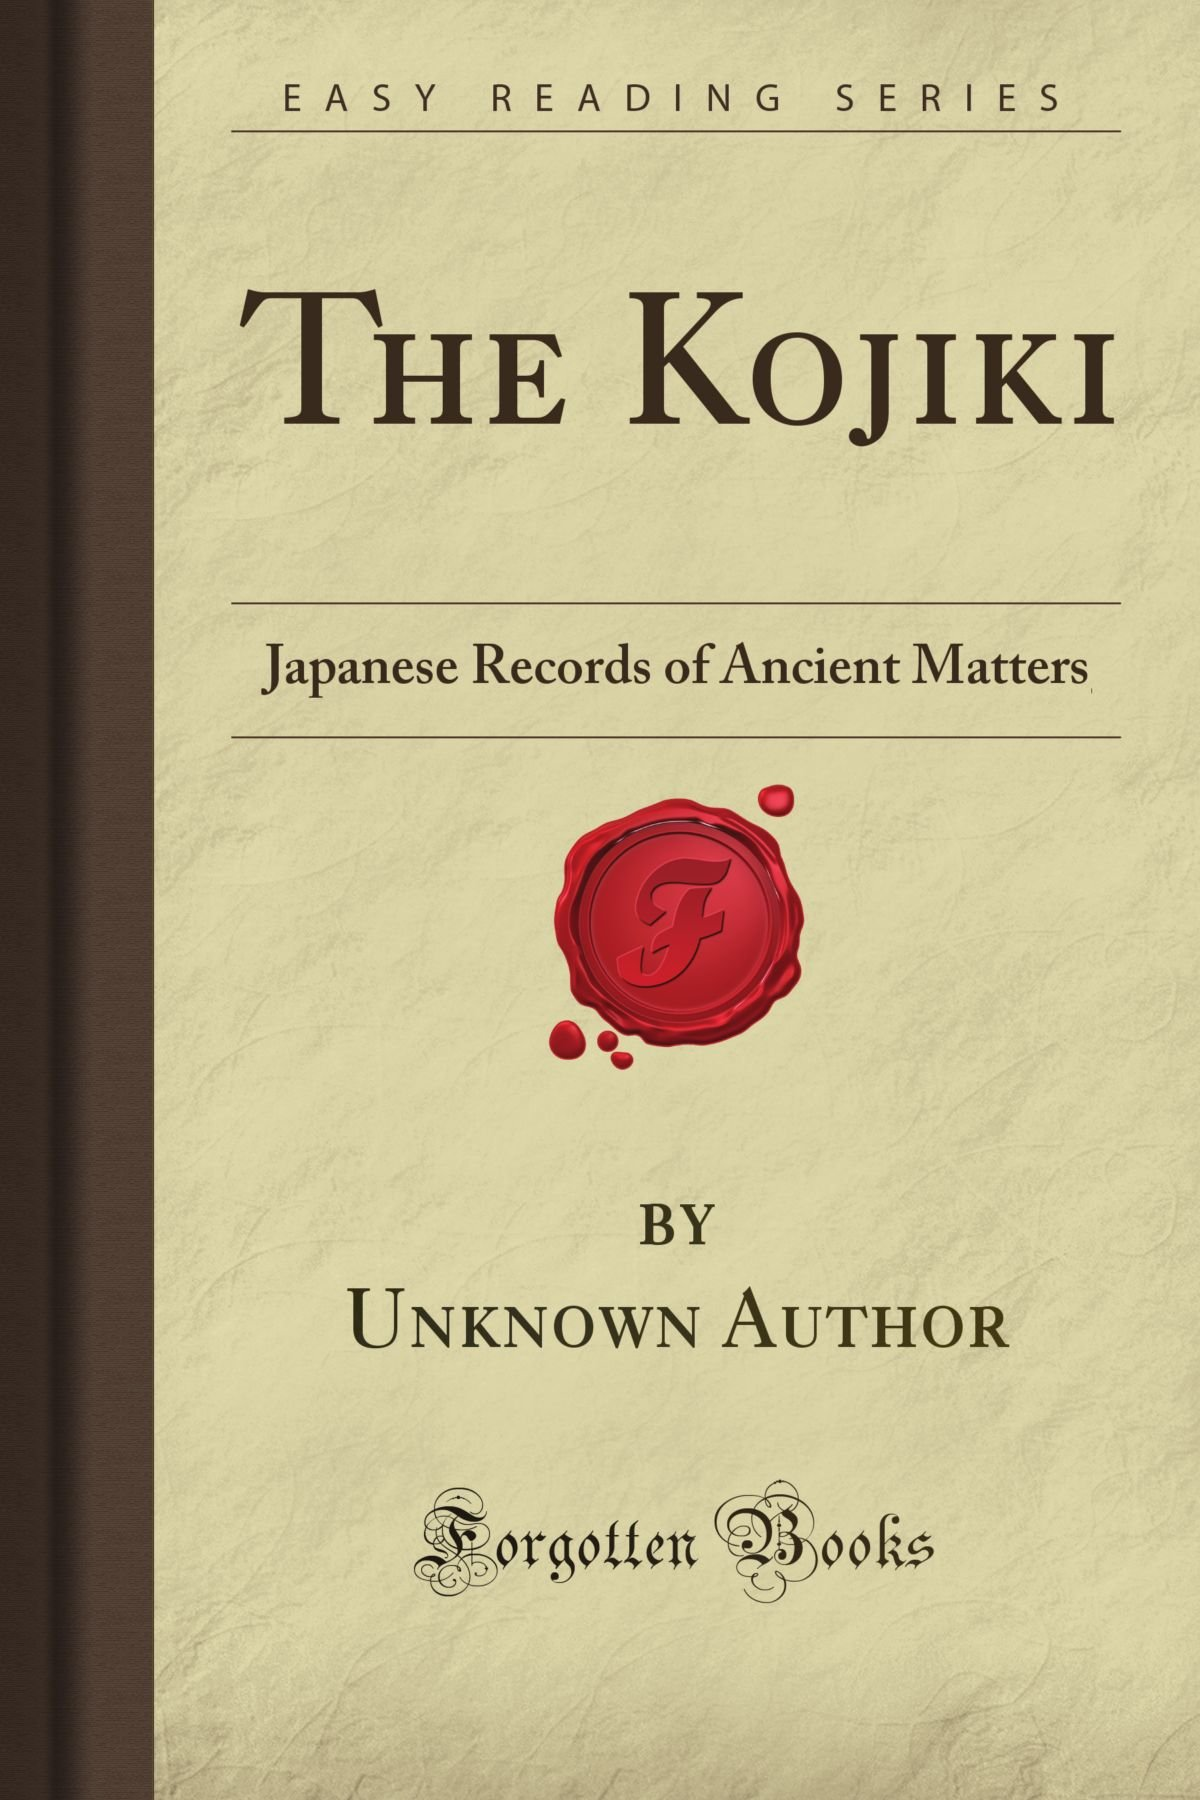 Buy The Kojiki: Japanese Records of Ancient Matters